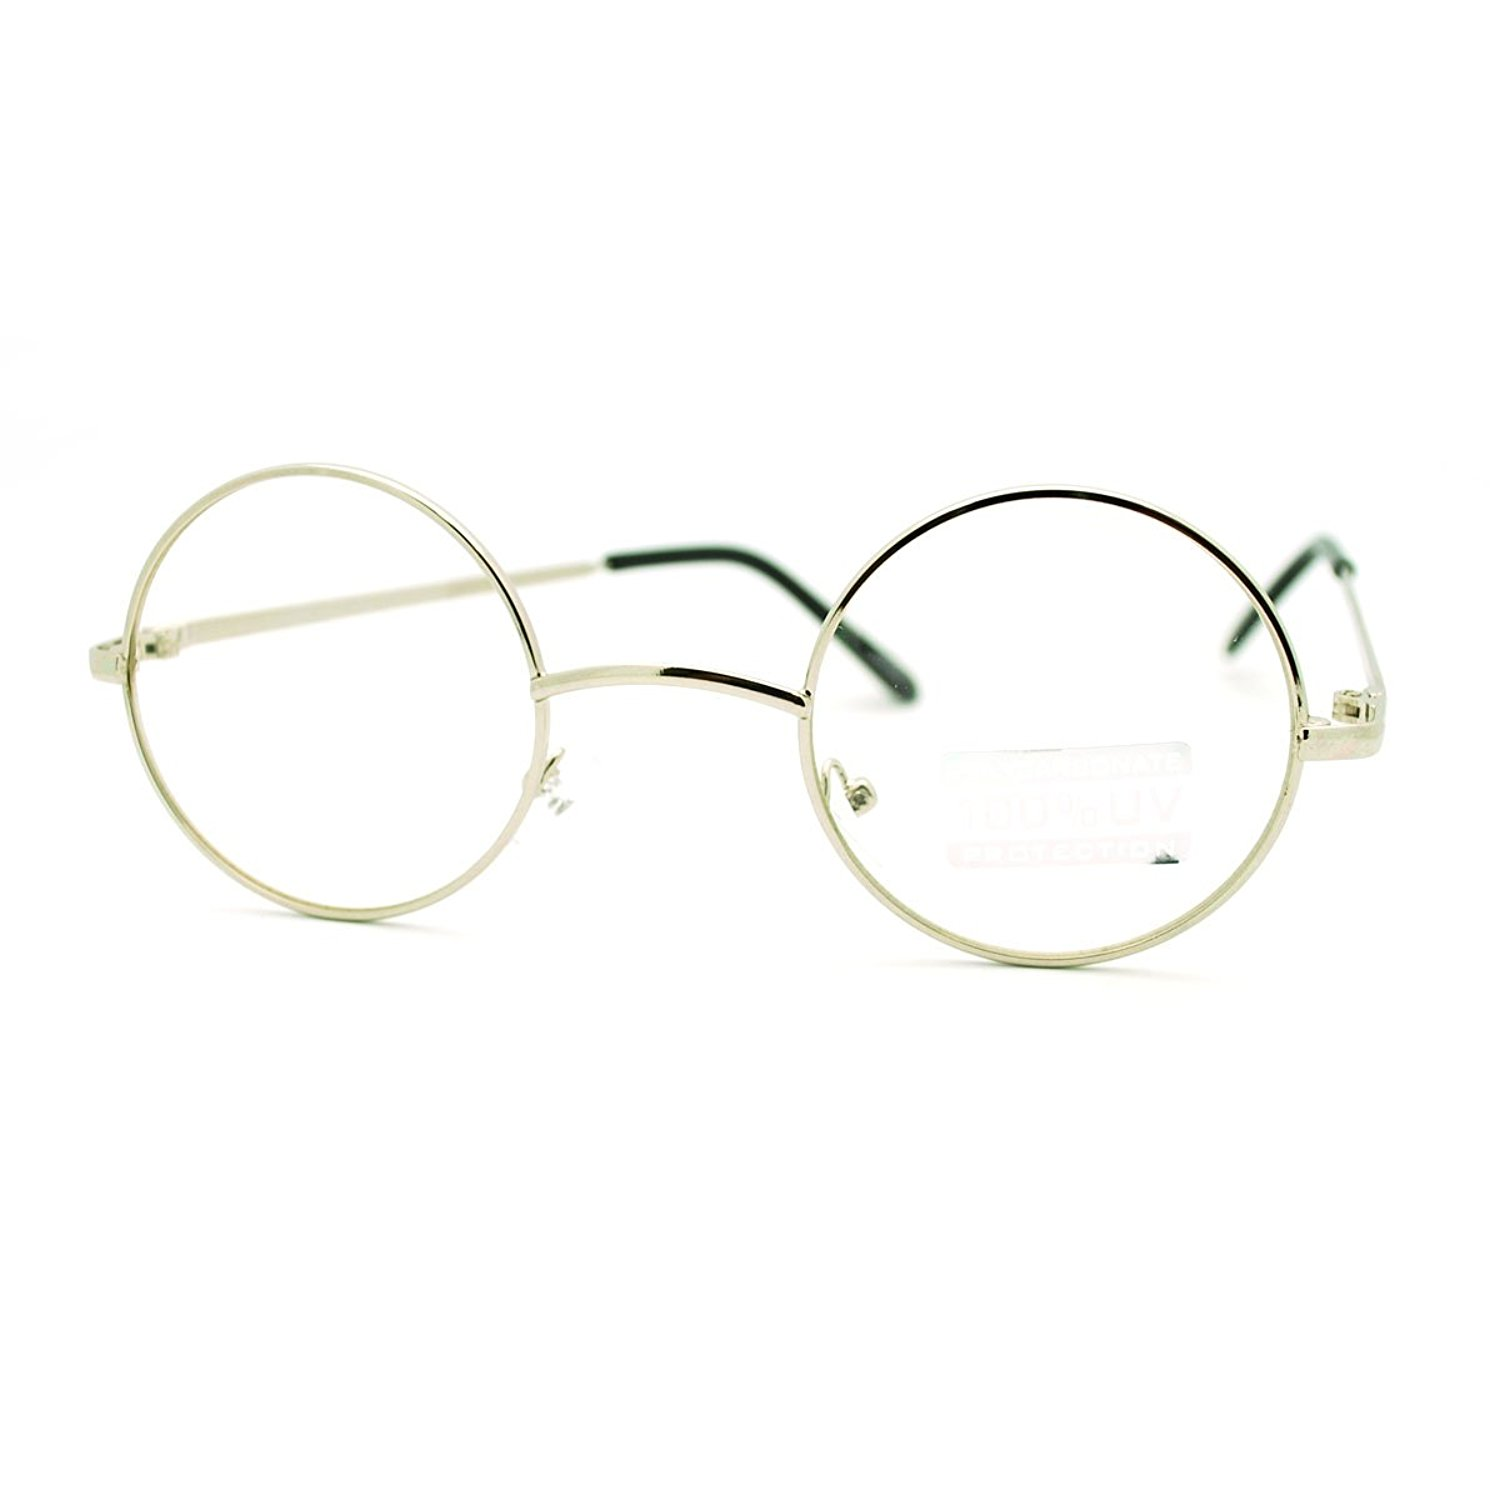 755a866b562e Get Quotations · Round Circle Clear Lens Eyeglasses Small Size Thin Frame  Unisex Glasses